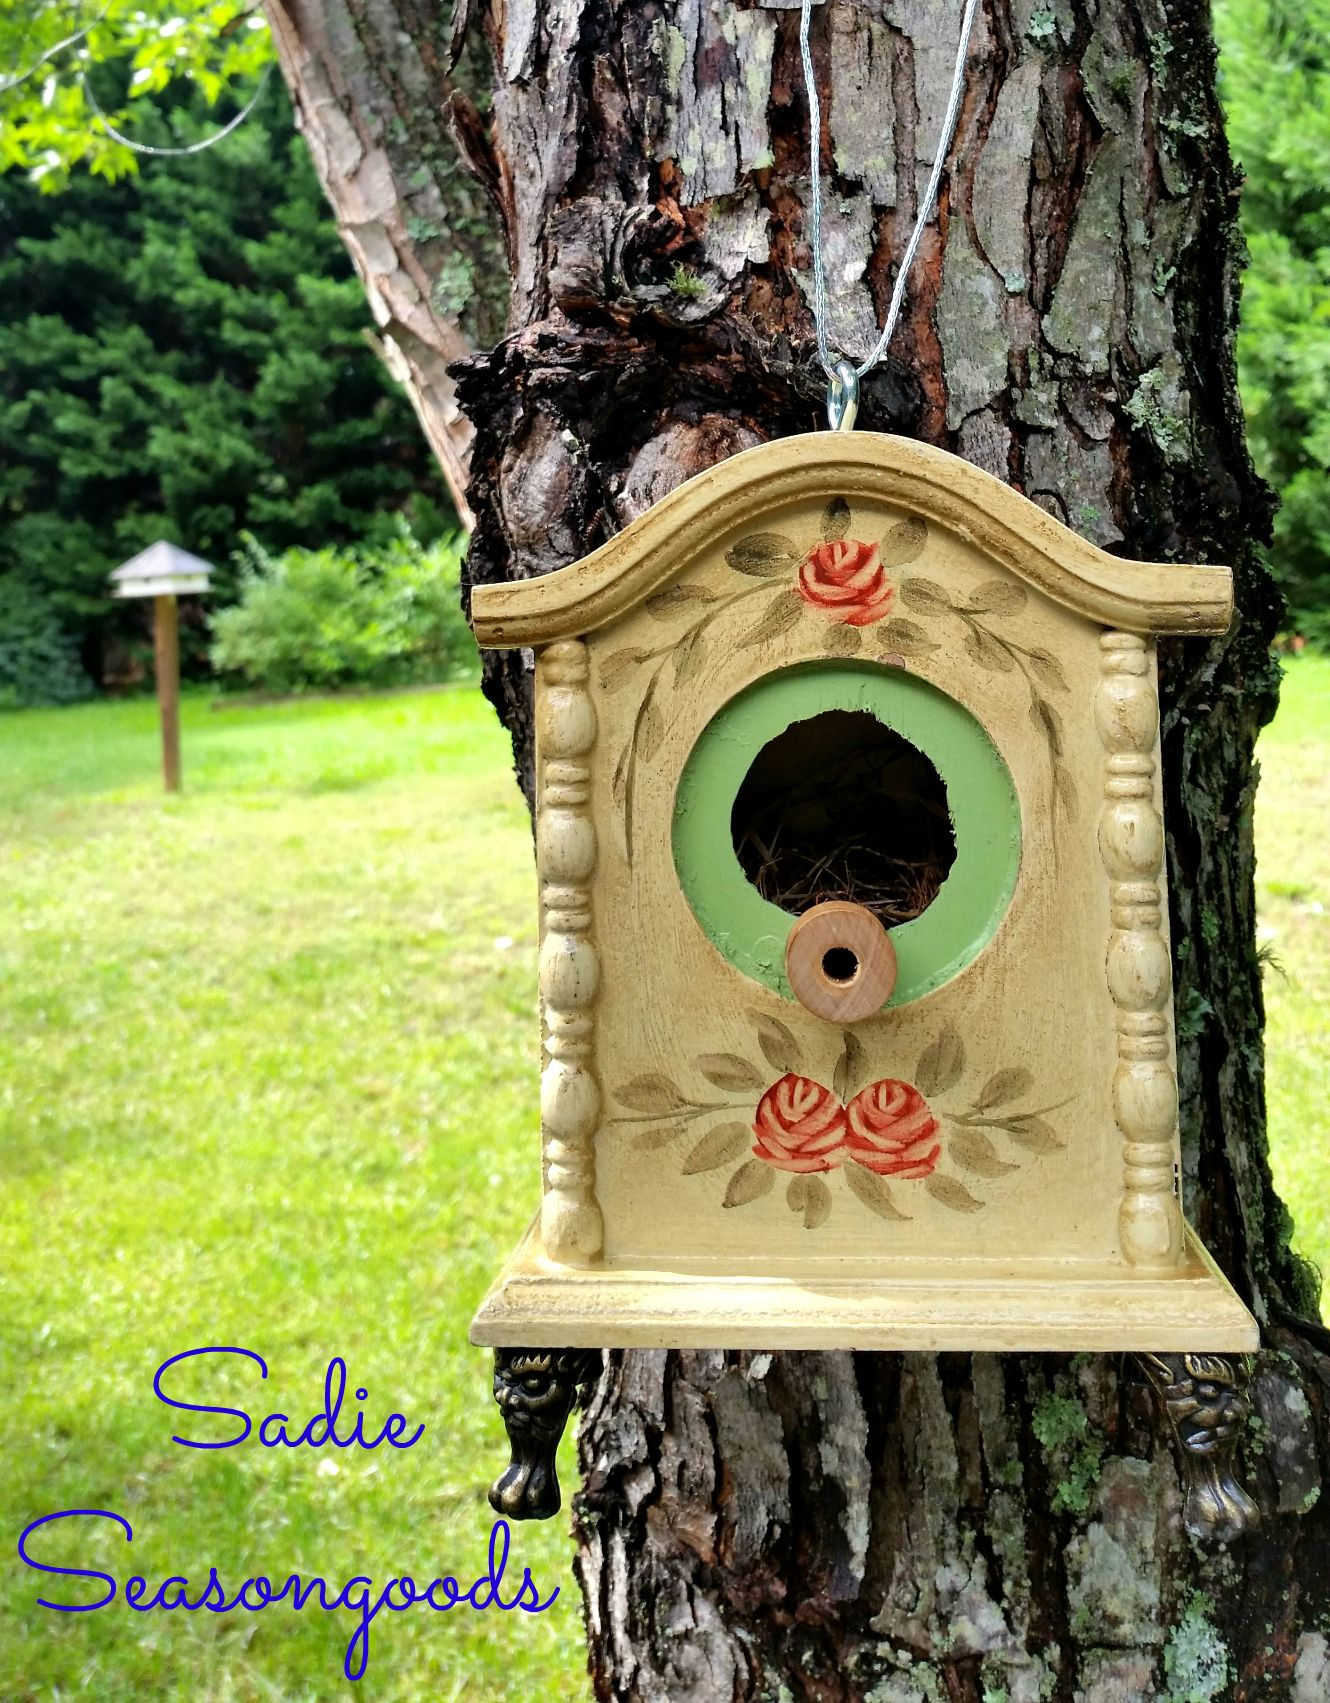 85f593974893c1e2b14e19c30ccf8251 Paint Designs Easy Diy Bird House on crooked bird houses, artistic bird houses, easy bird house designs, diy recycled bird houses,